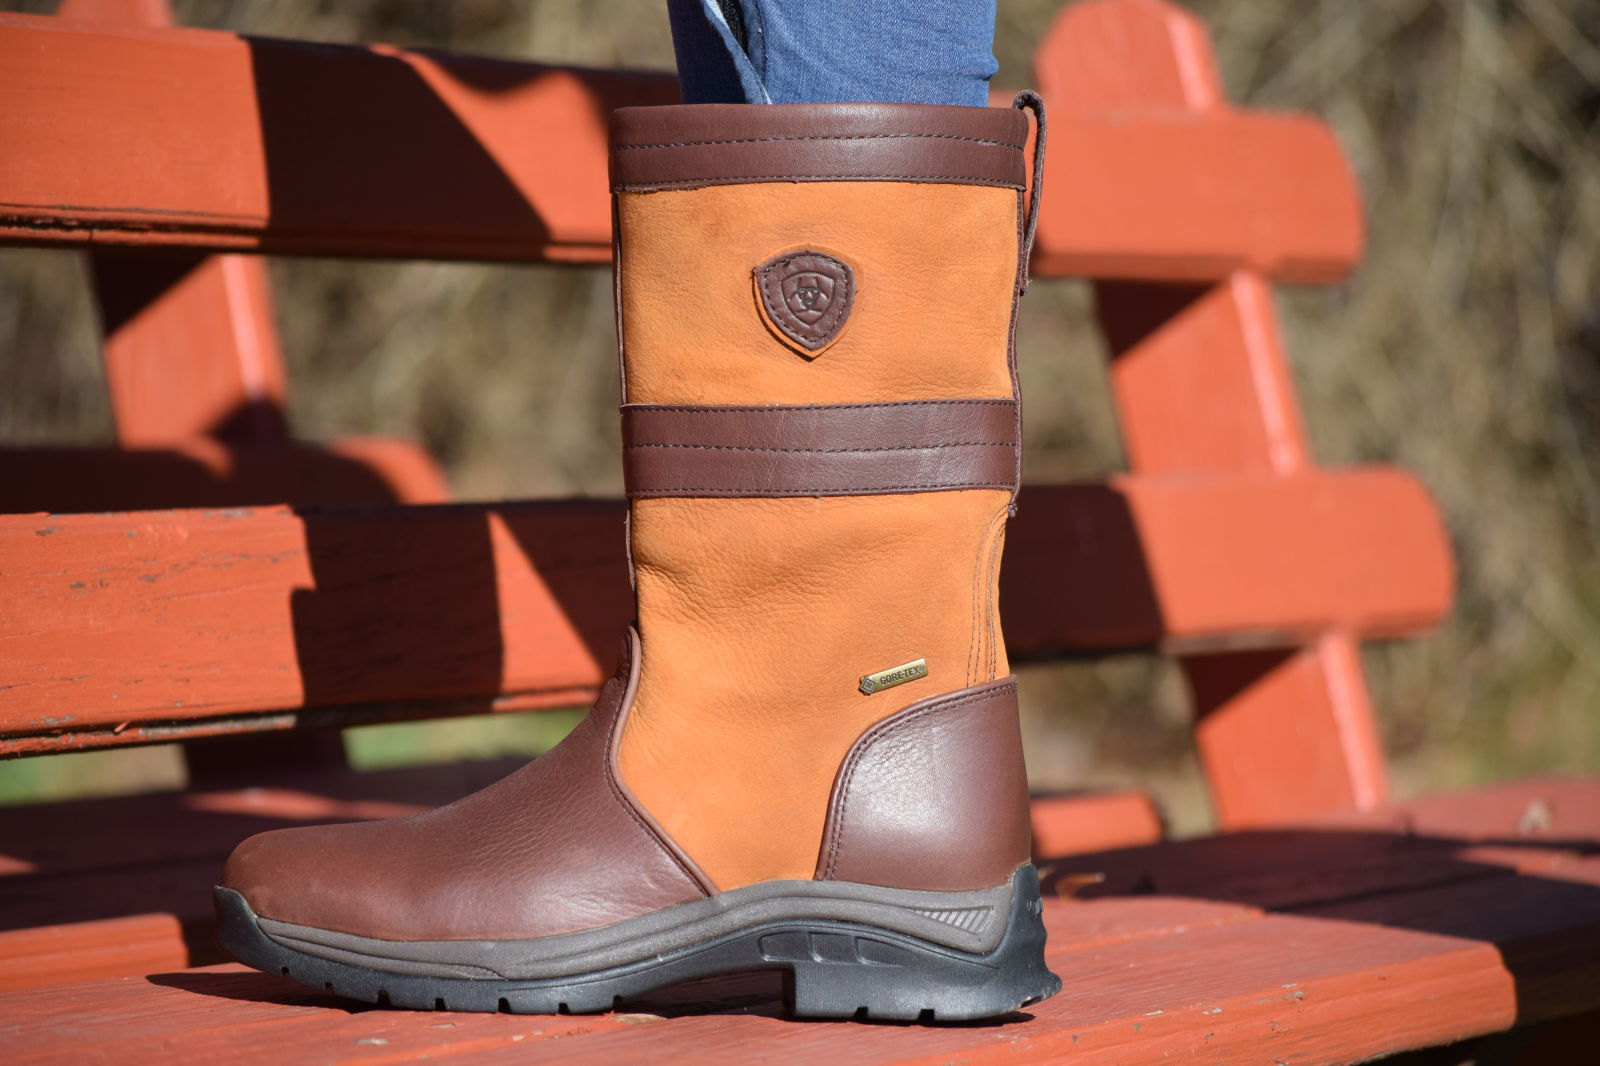 207eadfea7e Product Review: Ariat Bryn Gtx Country Boots | Eventing Nation ...